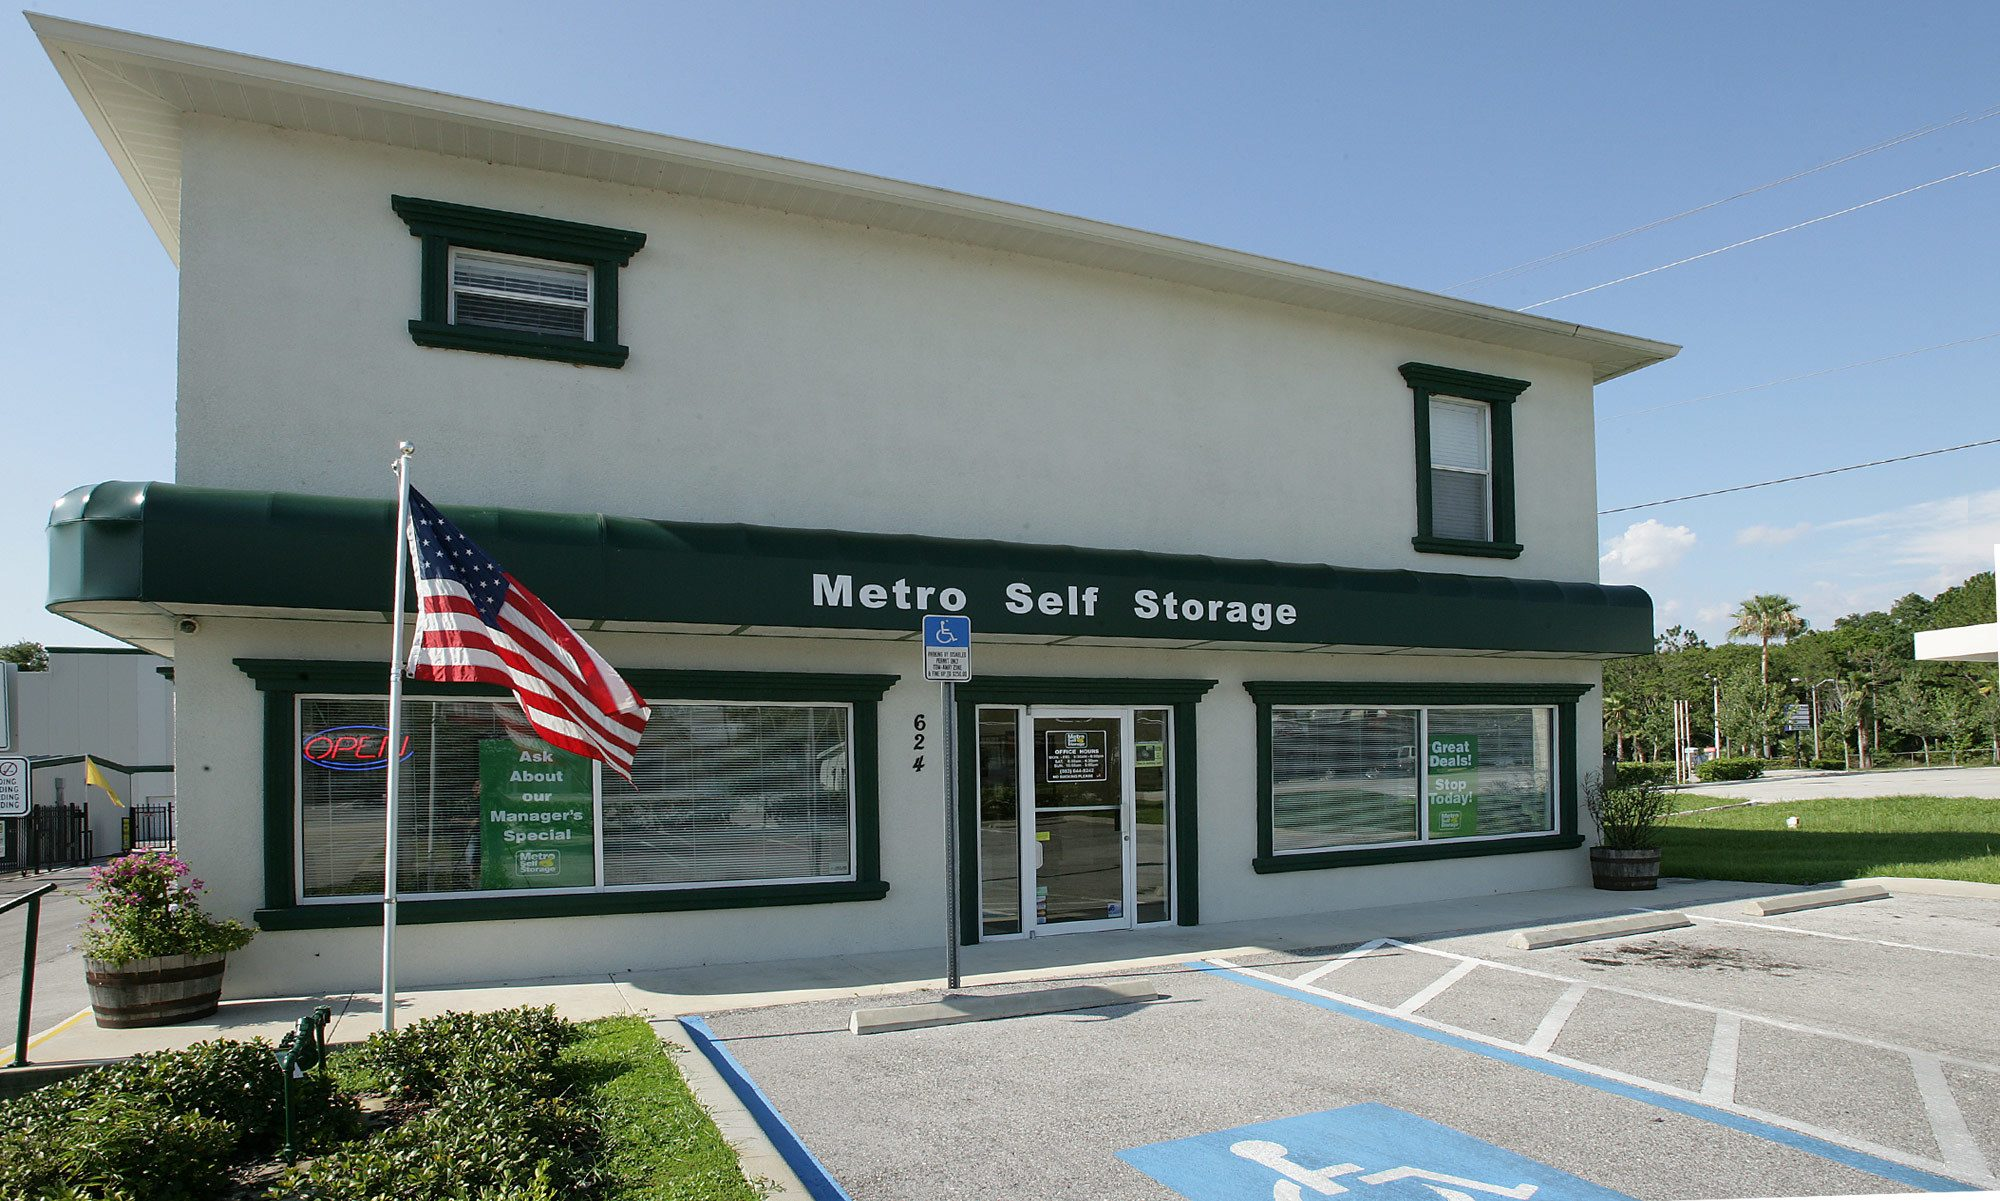 Metro Self Storage in Lakeland, FL